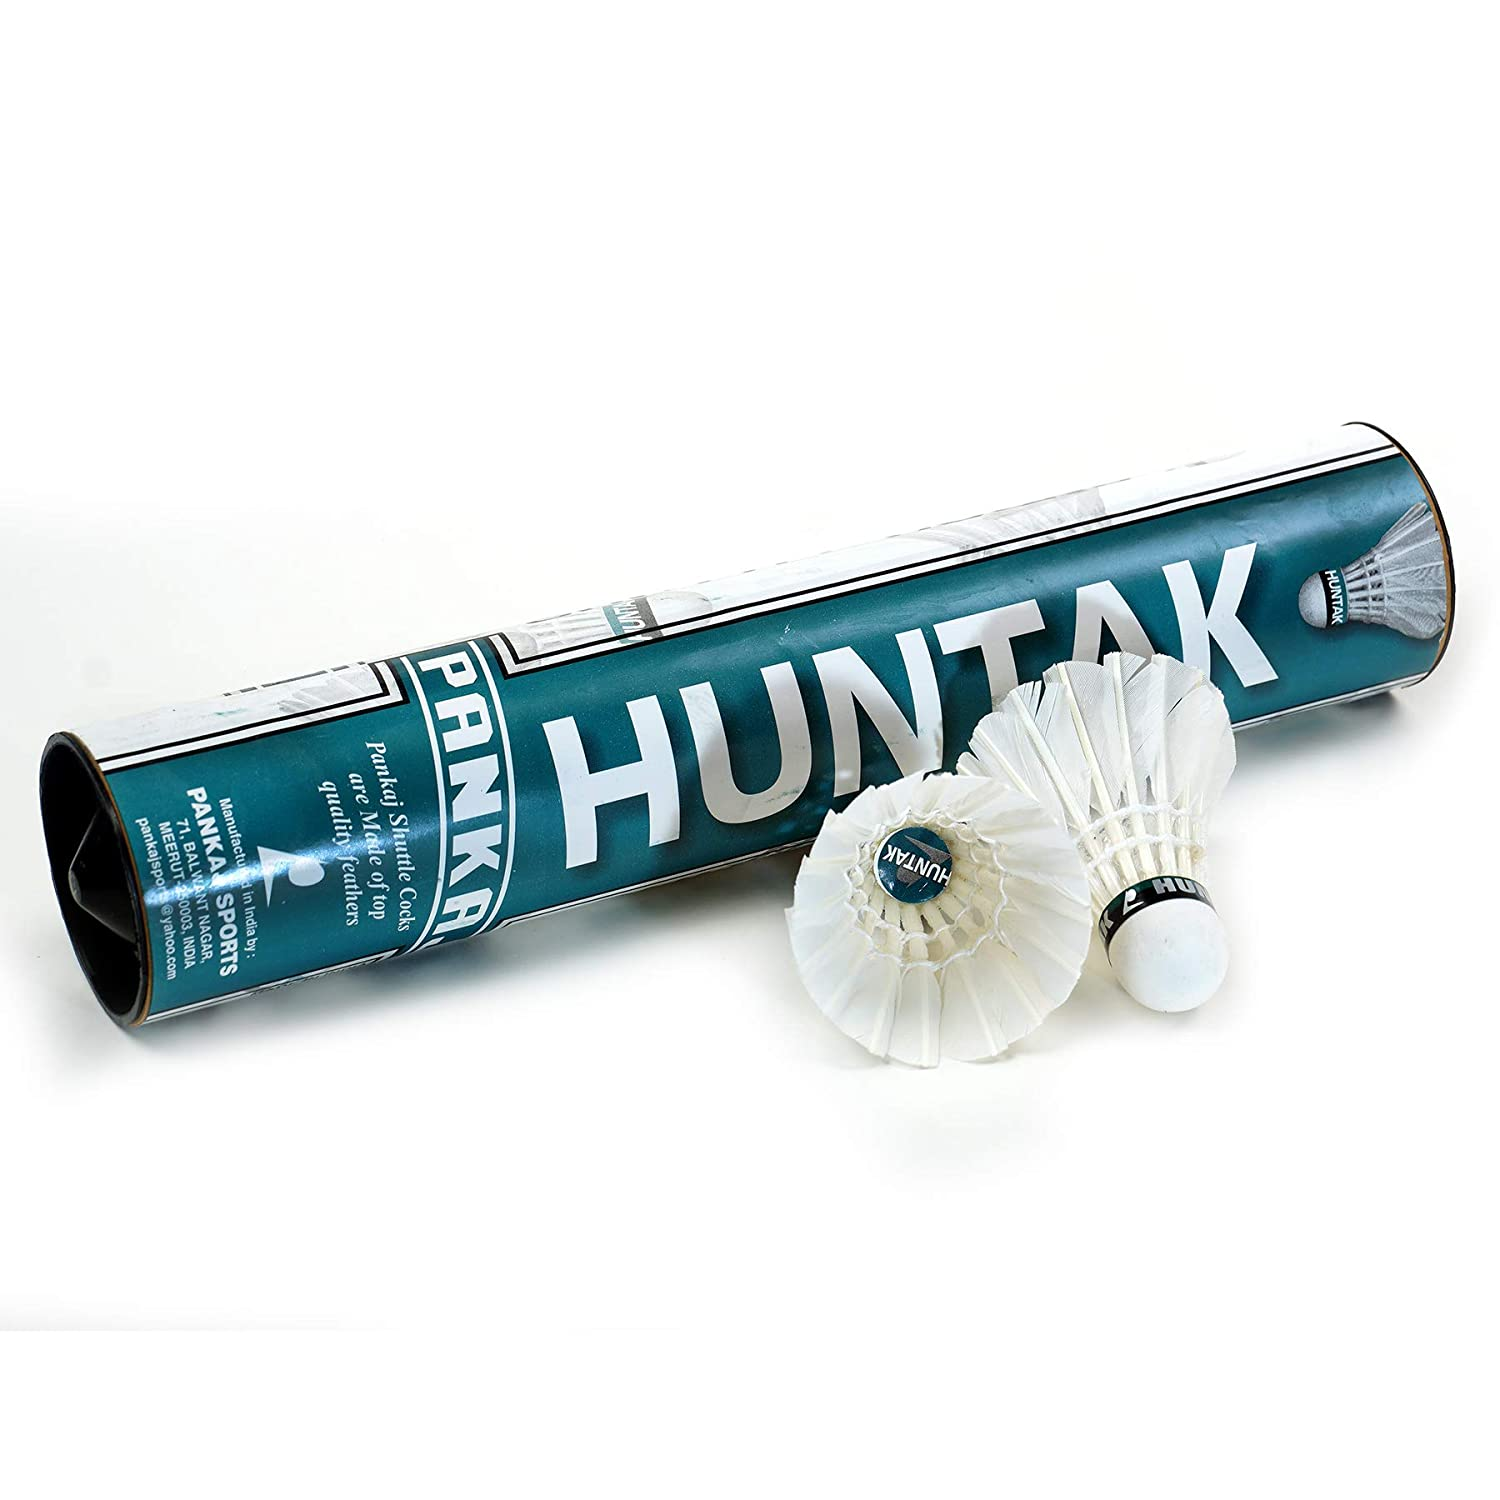 Huntak Badminton Shuttlecock - Feather Quality